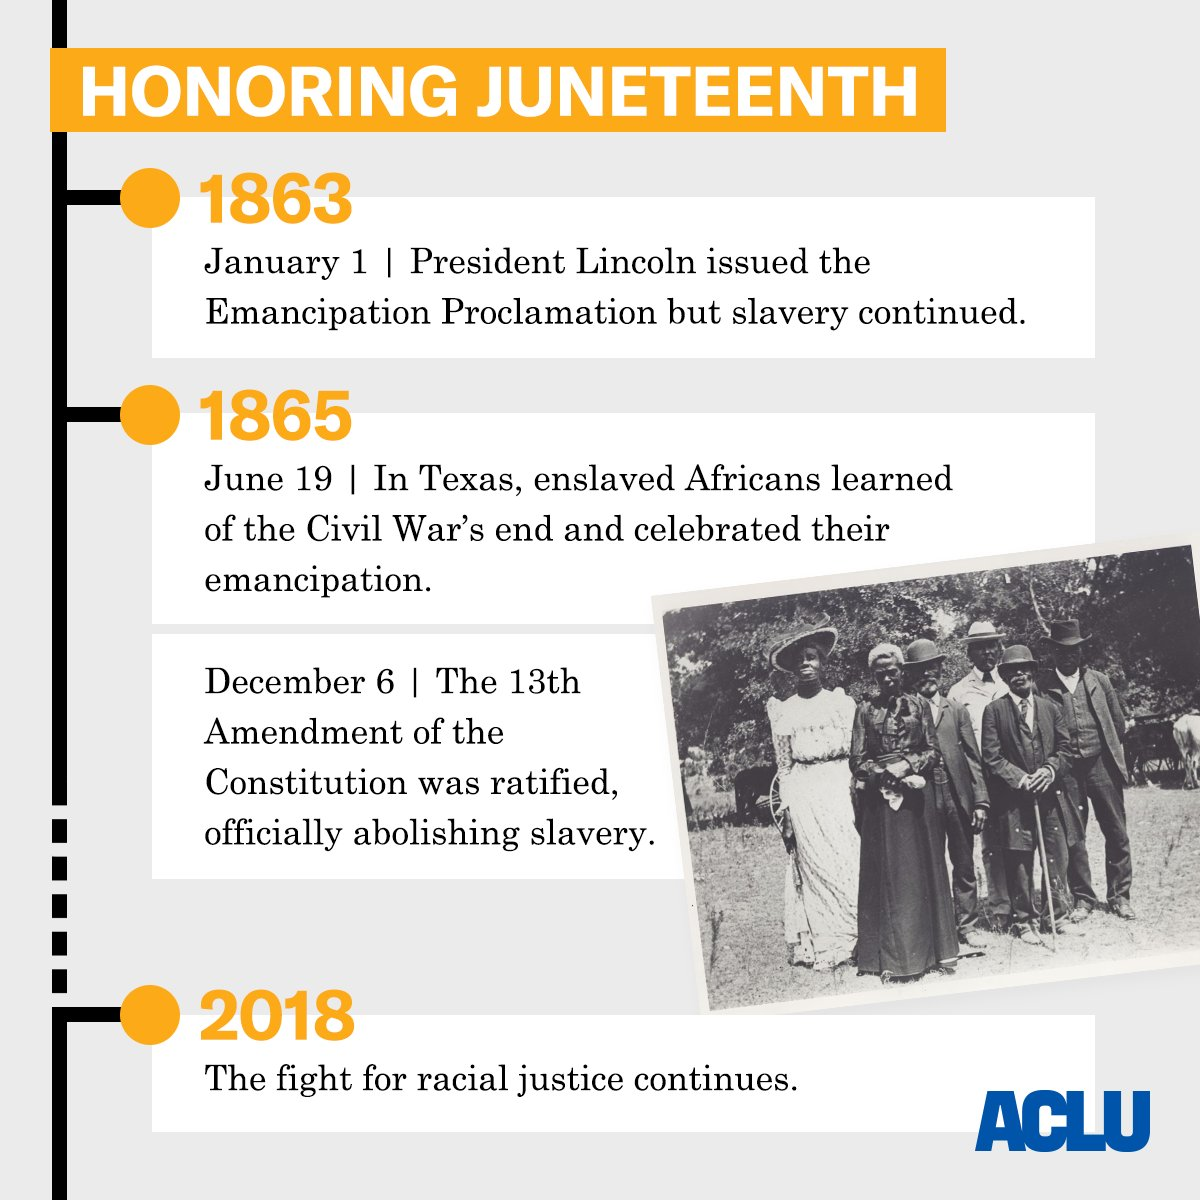 On #Juneteenth, we honor African-Africans' emancipation from slavery. We will continue the fight for racial justice.